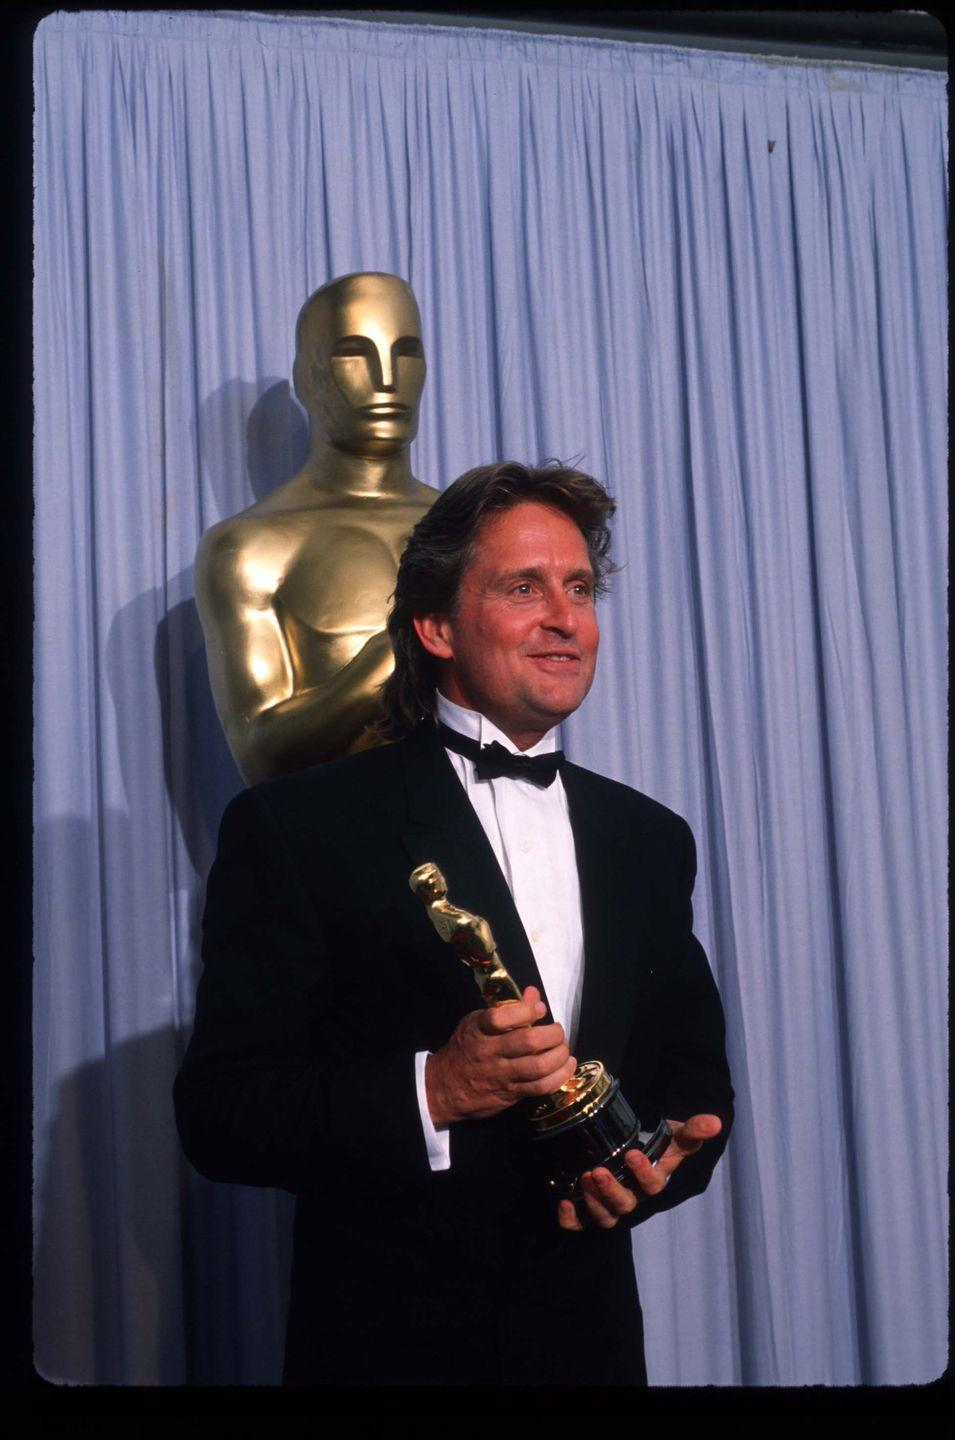 <p>The same year <em>Fatal Attraction </em>was released, Michael Douglas scooped up an Oscar for Best Actor in a Leading Role for his performance in <em>Wall Street</em>. A.k.a. the man had an incredible run circa 1987.</p>